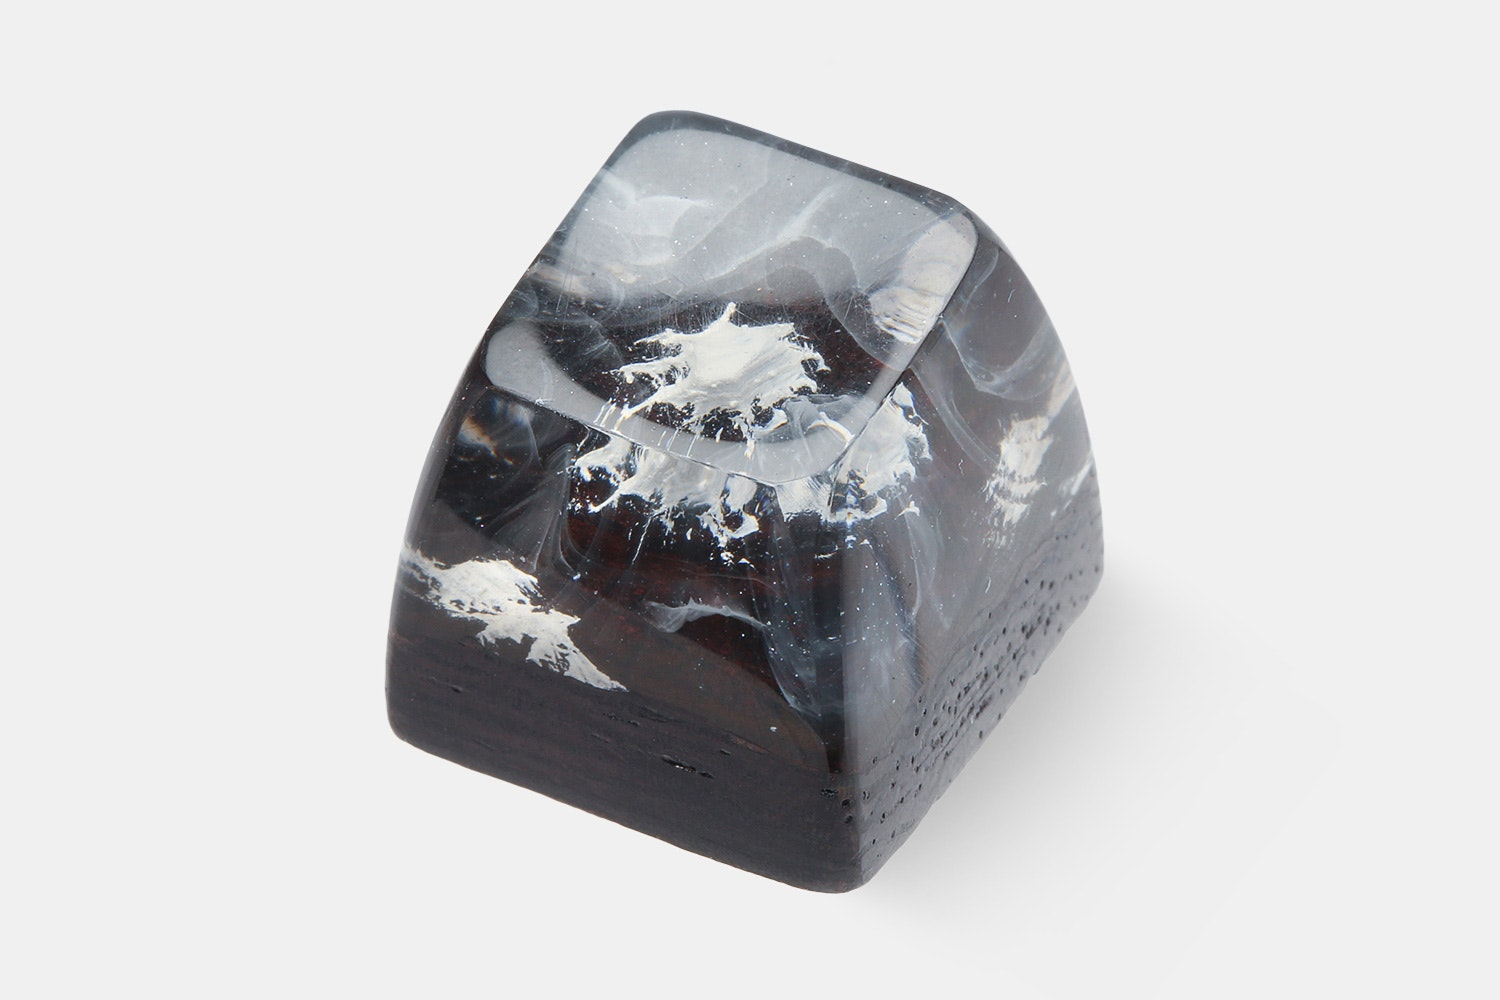 BKD Mt. Fuji Wood & Resin Artisan Keycap